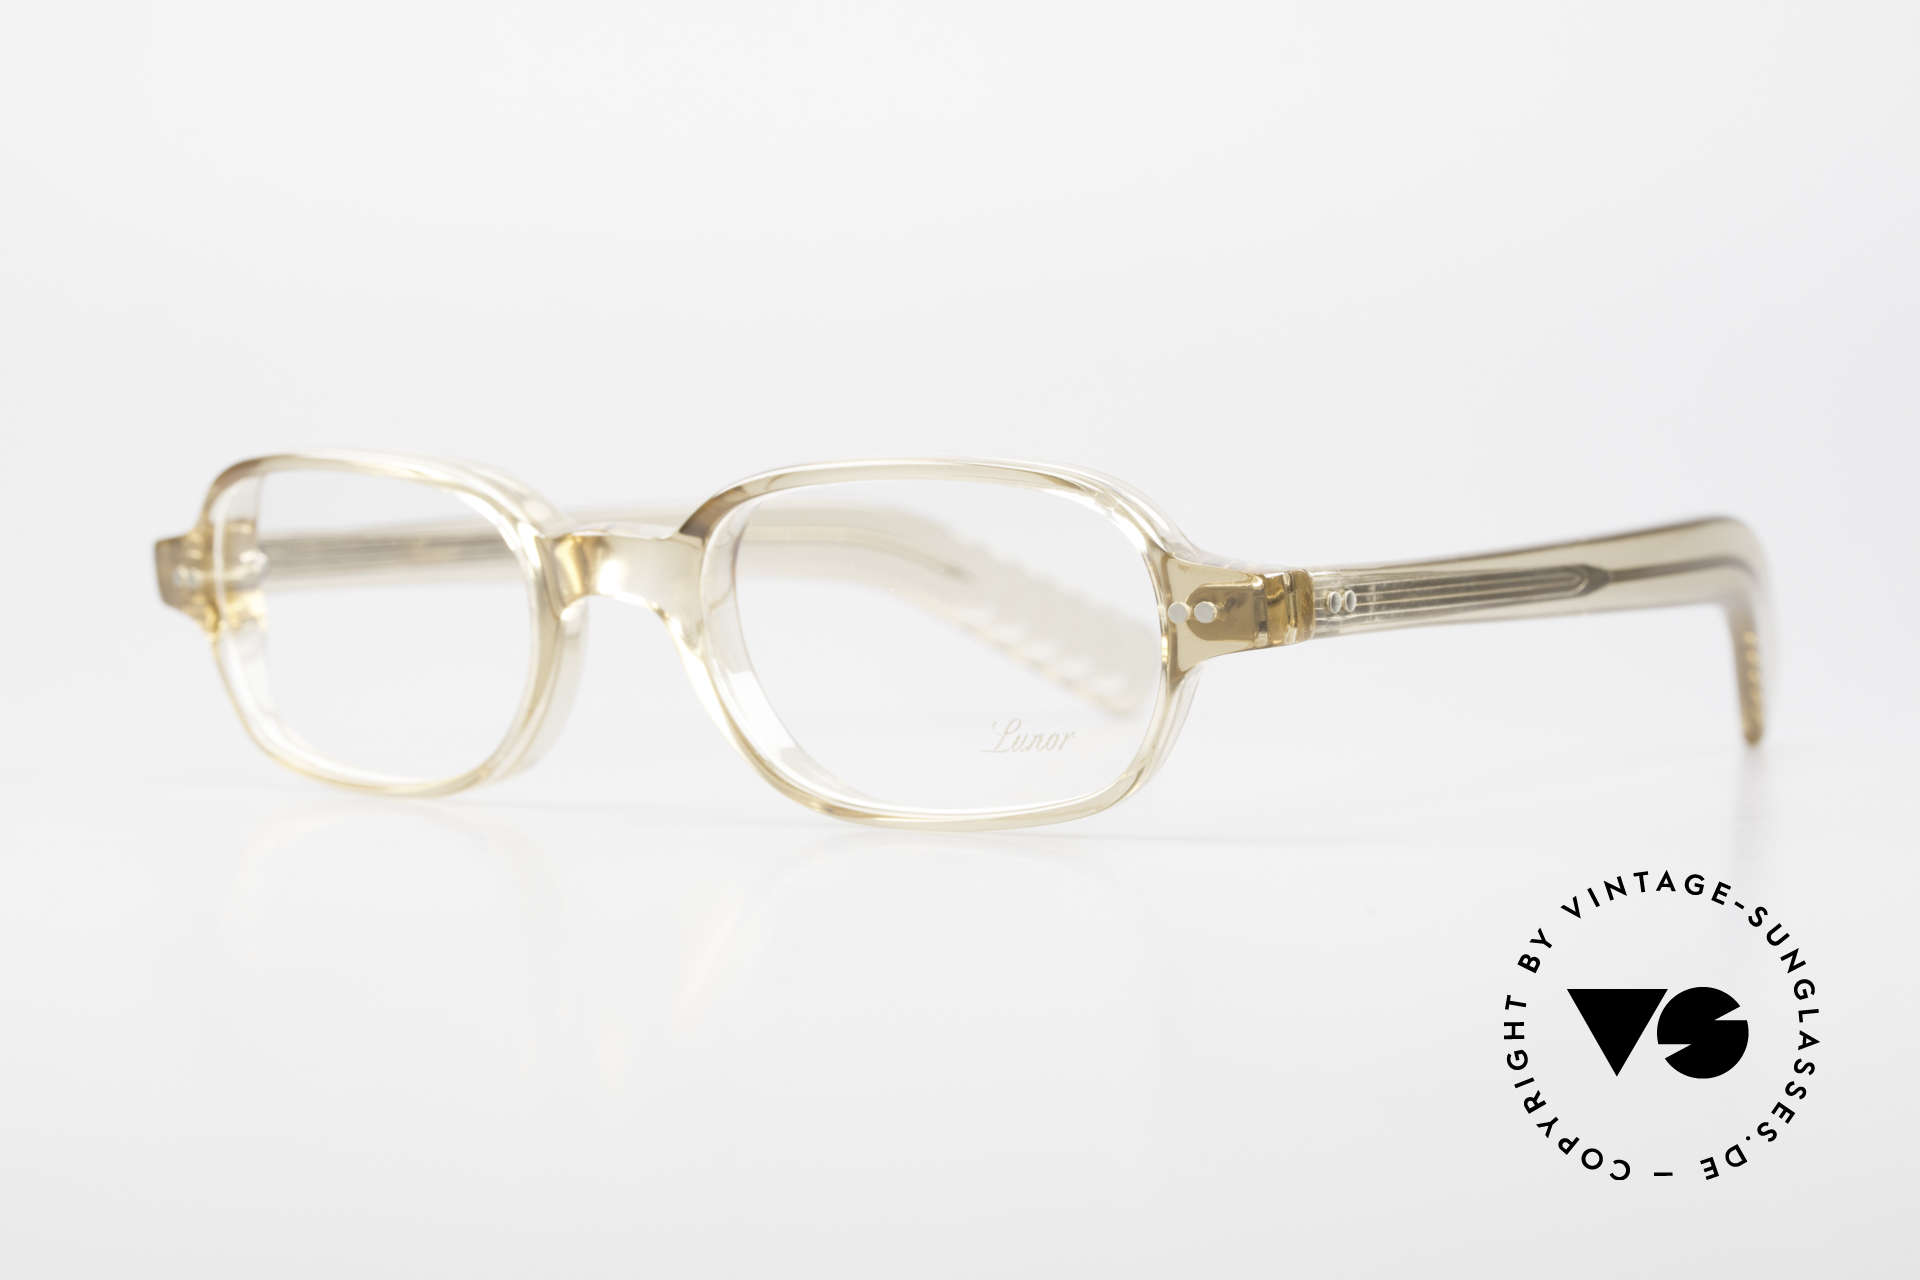 """Lunor A56 Classic Lunor Acetate Glasses, timeless """"crystal"""" frame (UNISEX: for ladies and gents), Made for Men and Women"""